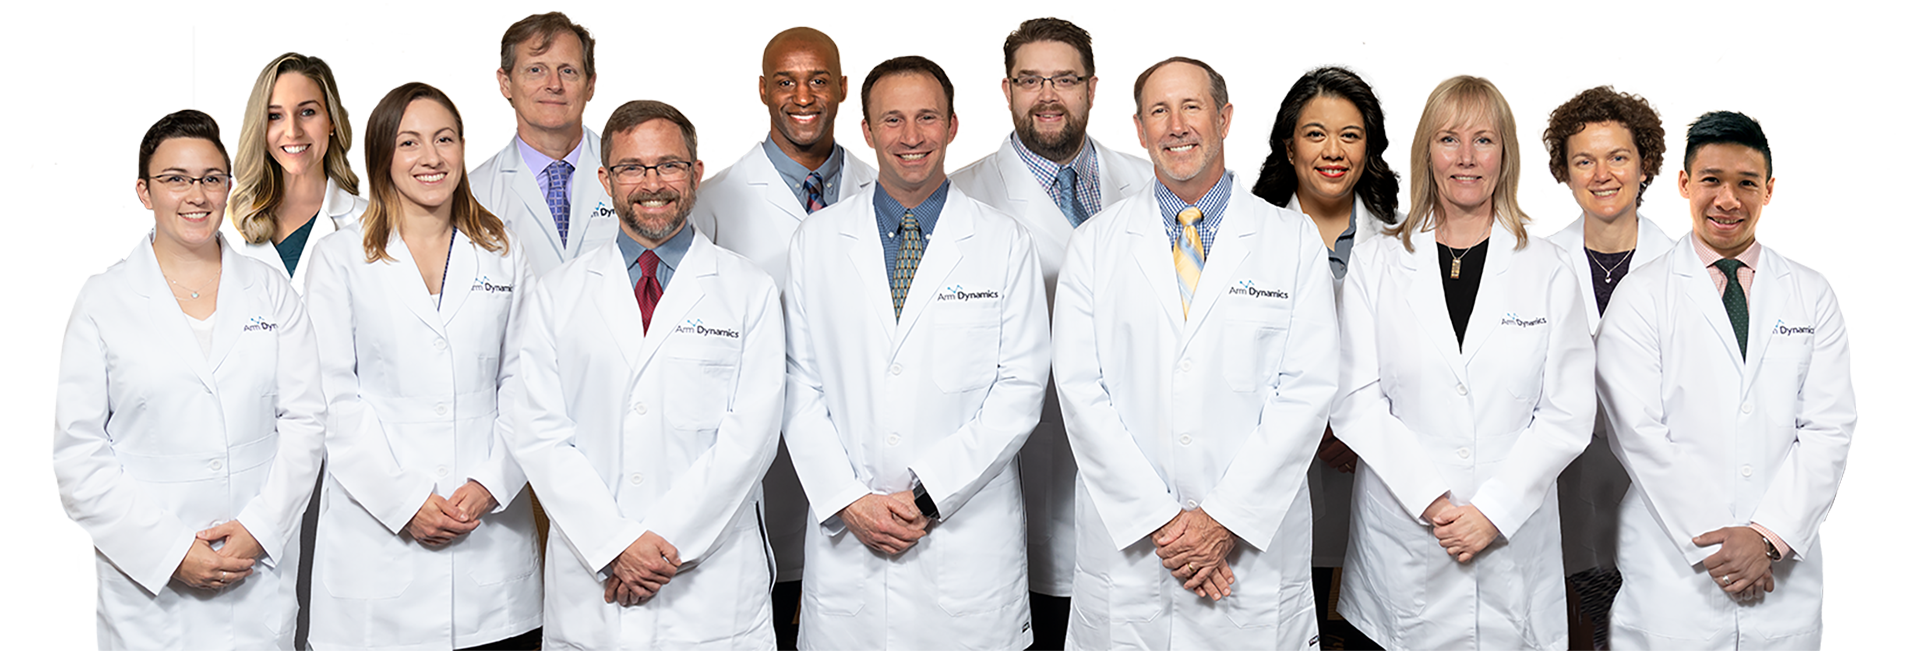 2021 Clinical Team Picture